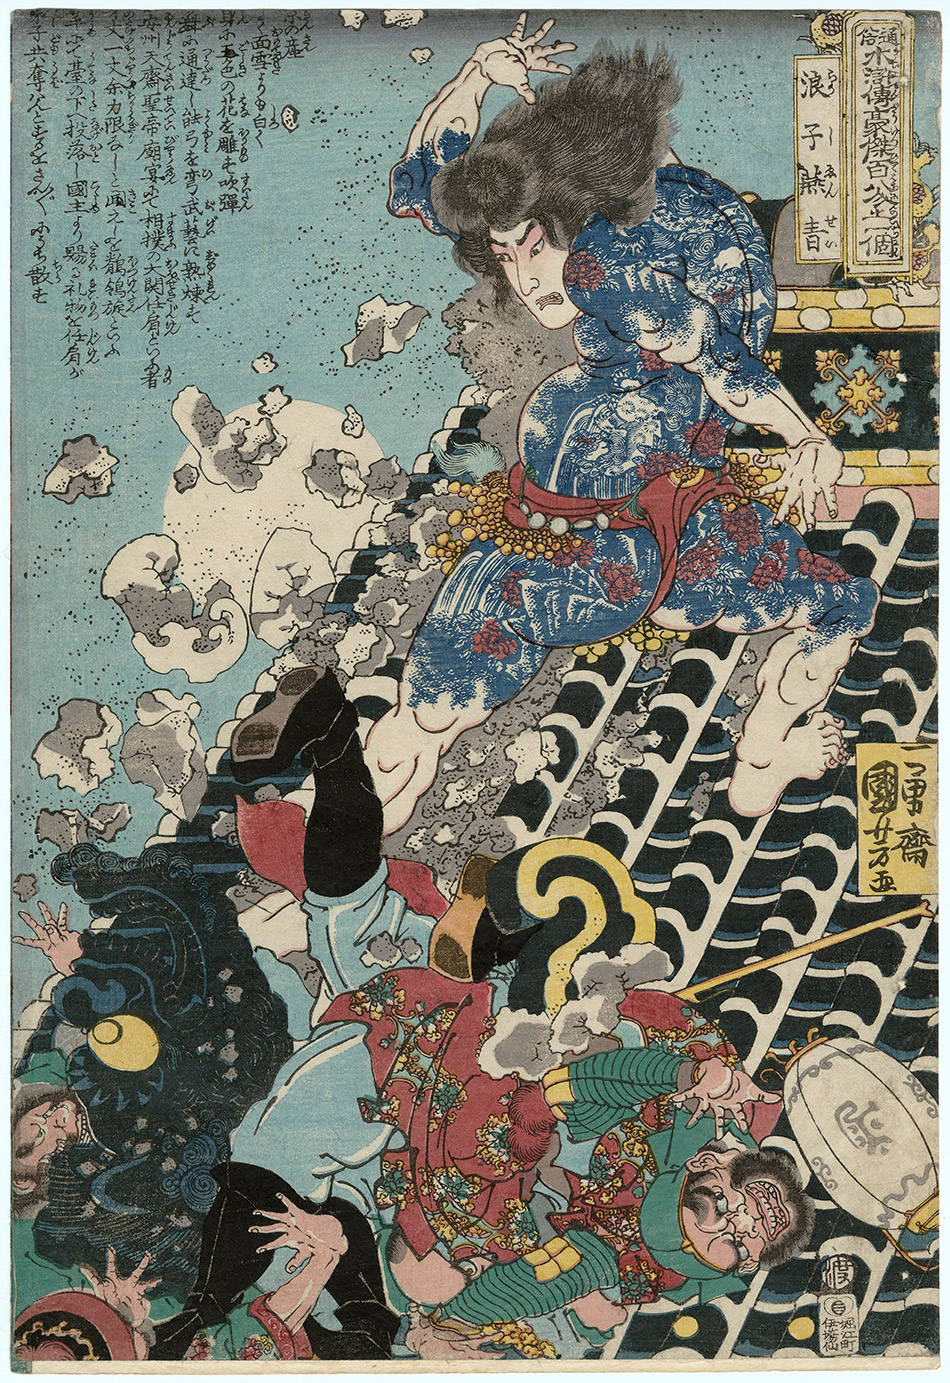 museum-of-fine-arts-boston_11.-Yan-Qing,-the-Graceful_Utagawa-Kuniyoshi_w